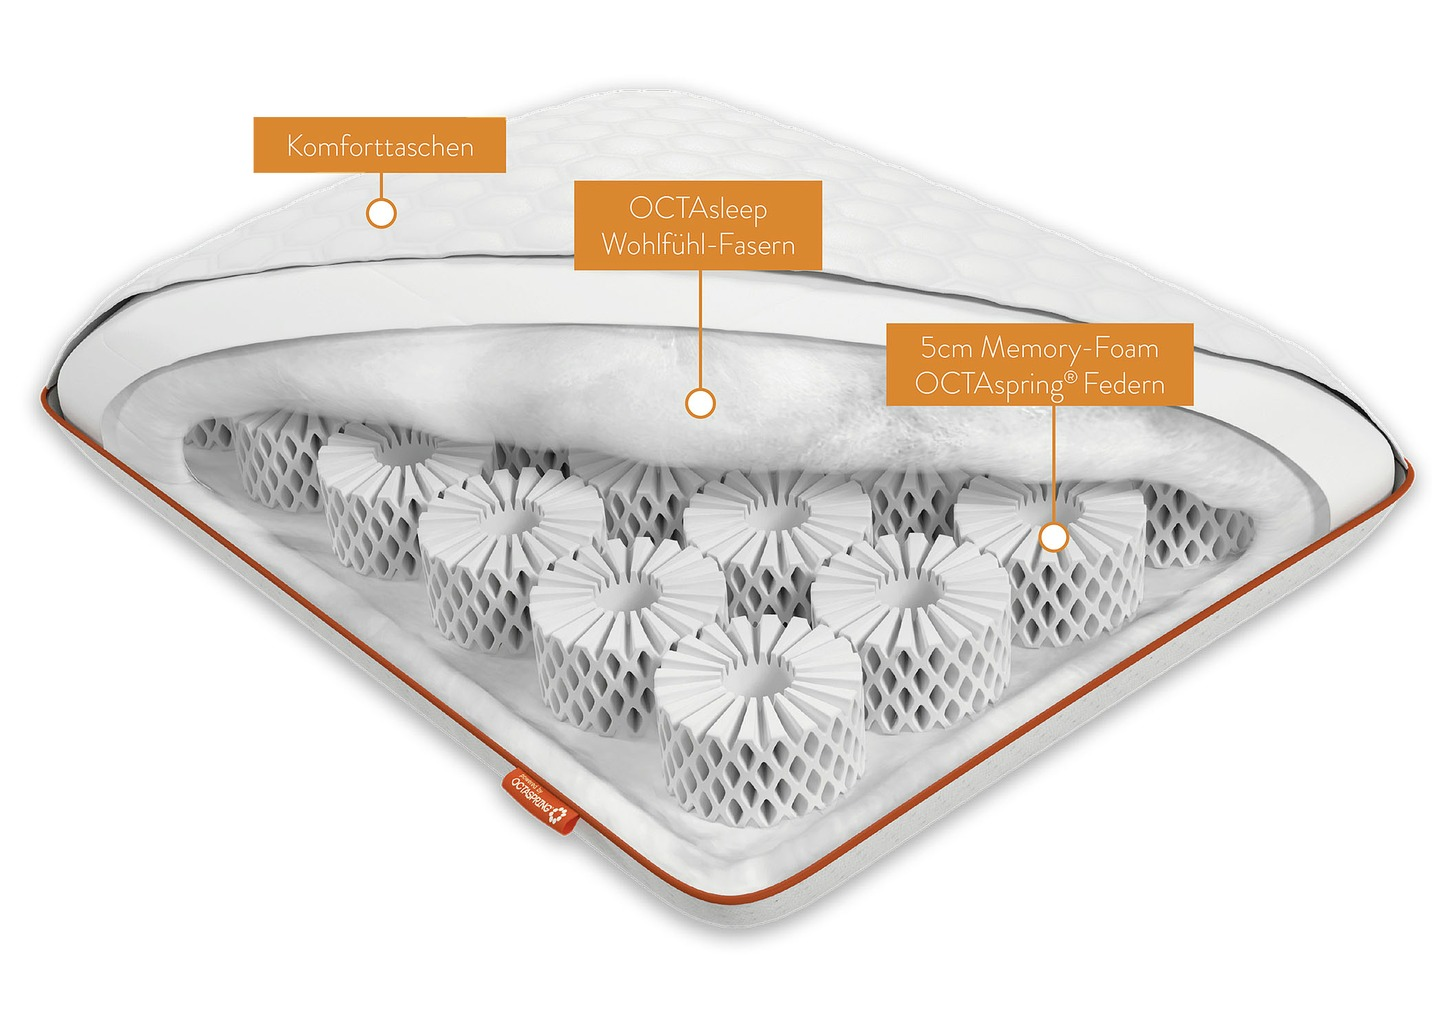 OCTAsleep Smart Kissen